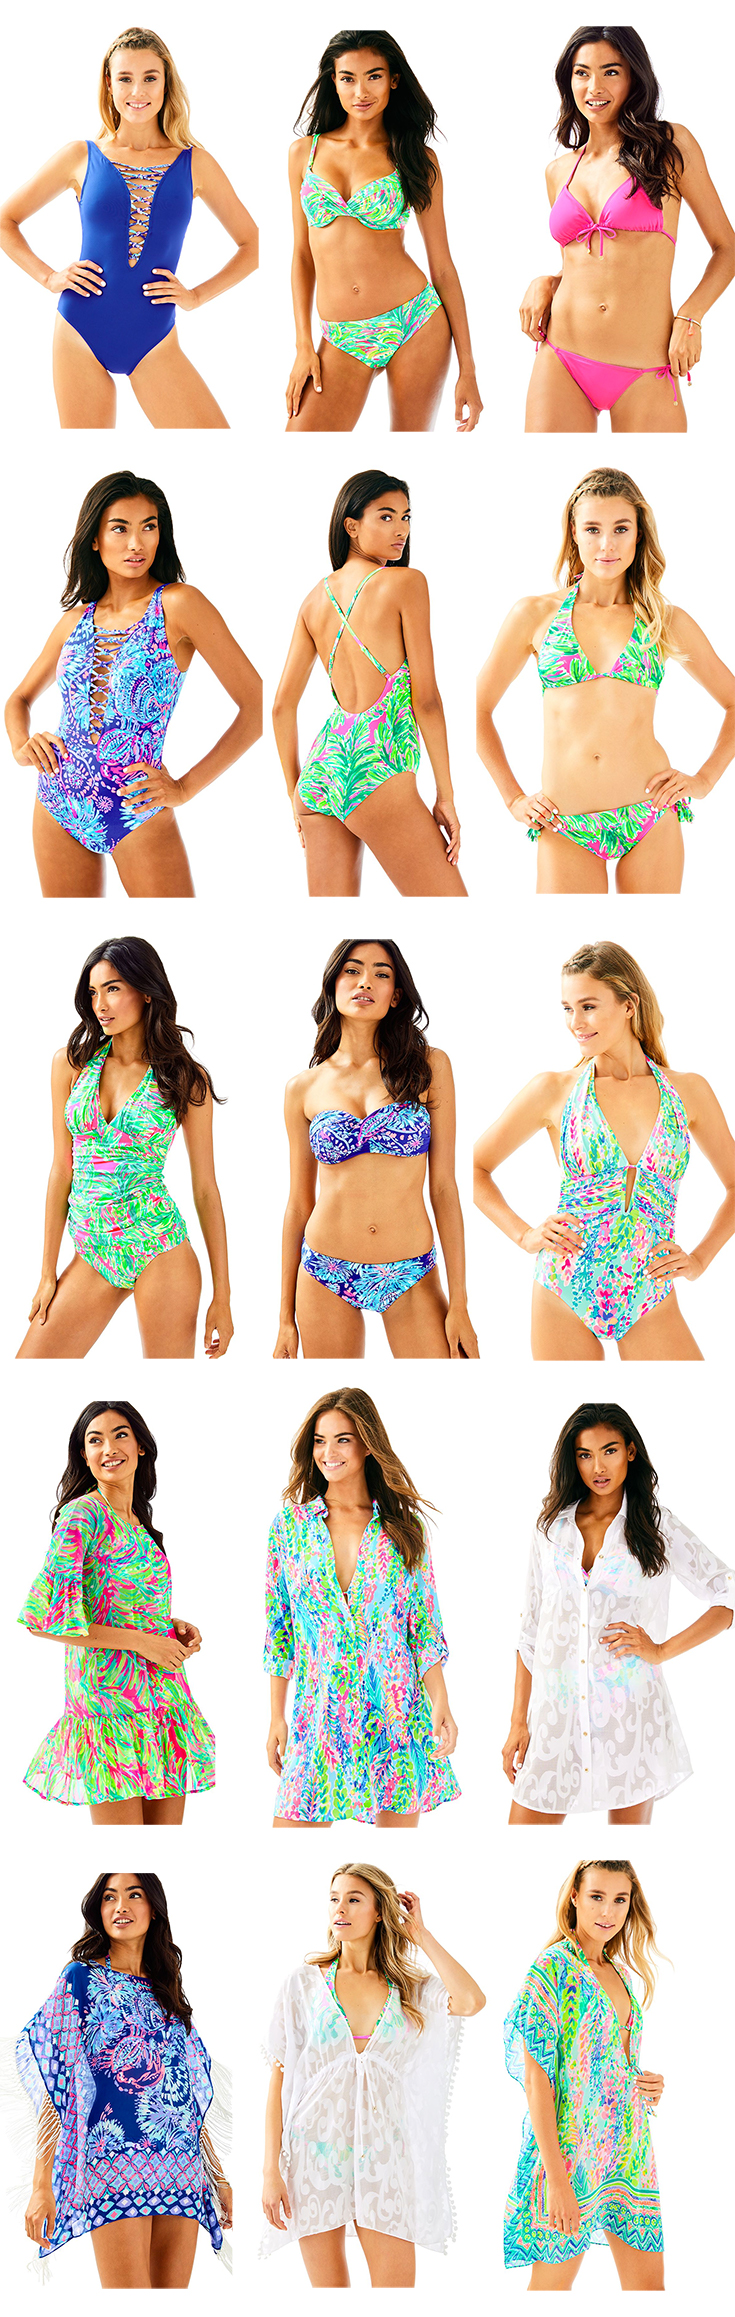 Top picks from the Lilly Pulitzer Swim Collection by fashion blogger Stephanie Ziajka from Diary of a Debutante